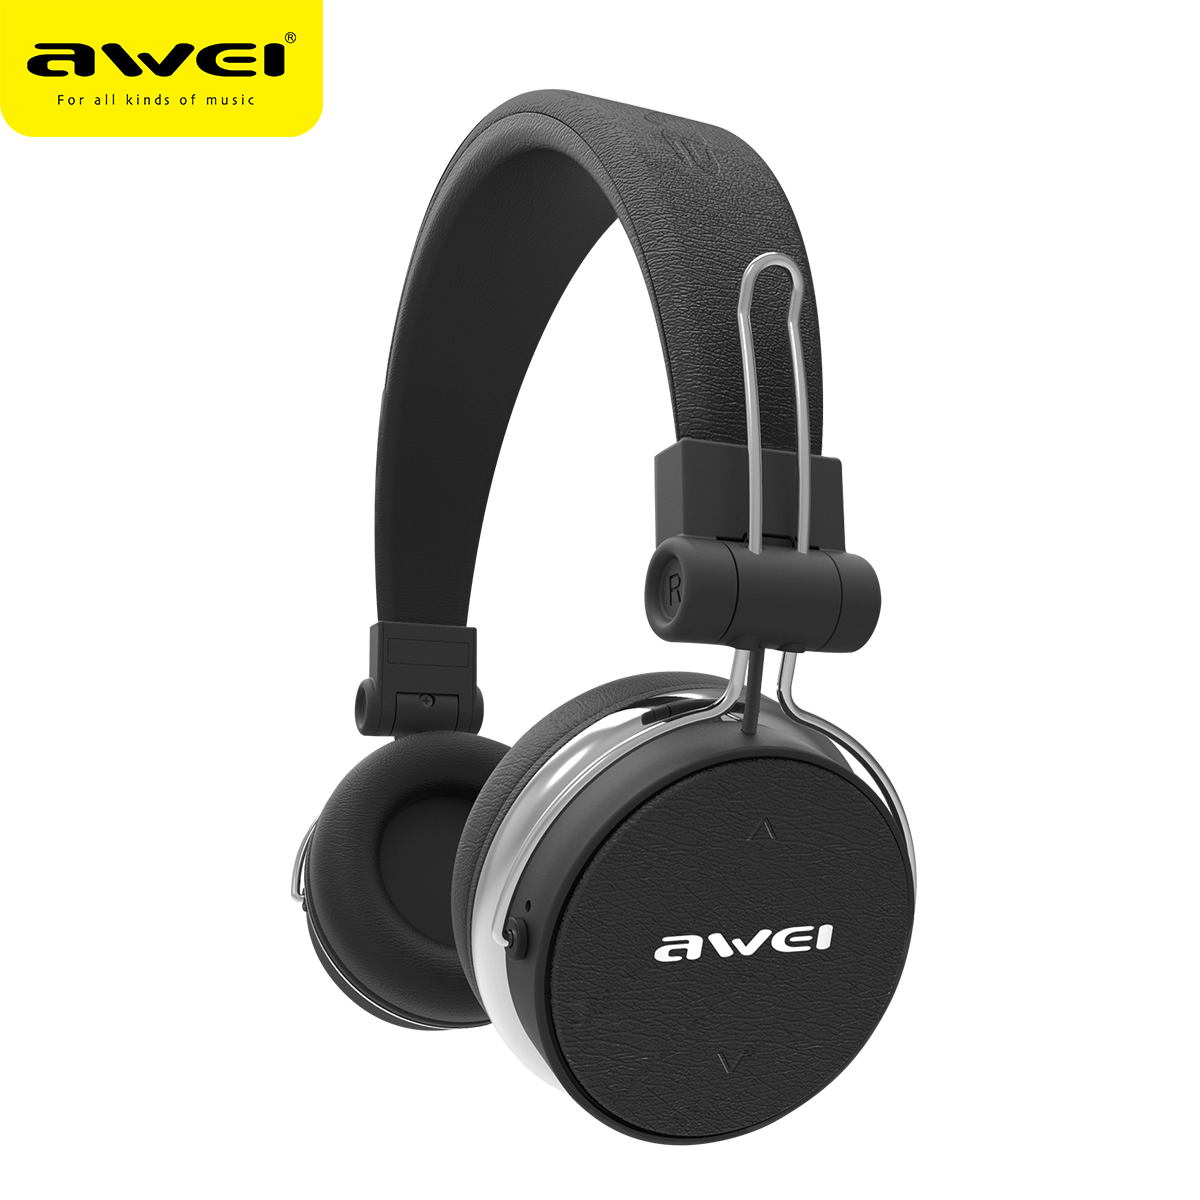 AWEI A700BL Bluetooth Headphone With Microphone Wireless Earphone Cordless Headset Casque Earpiece For Cellphone Stereo Kulakl k awei a920bls bluetooth earphone wireless headphone sport headset with magnet auriculares cordless headphones casque 10h music